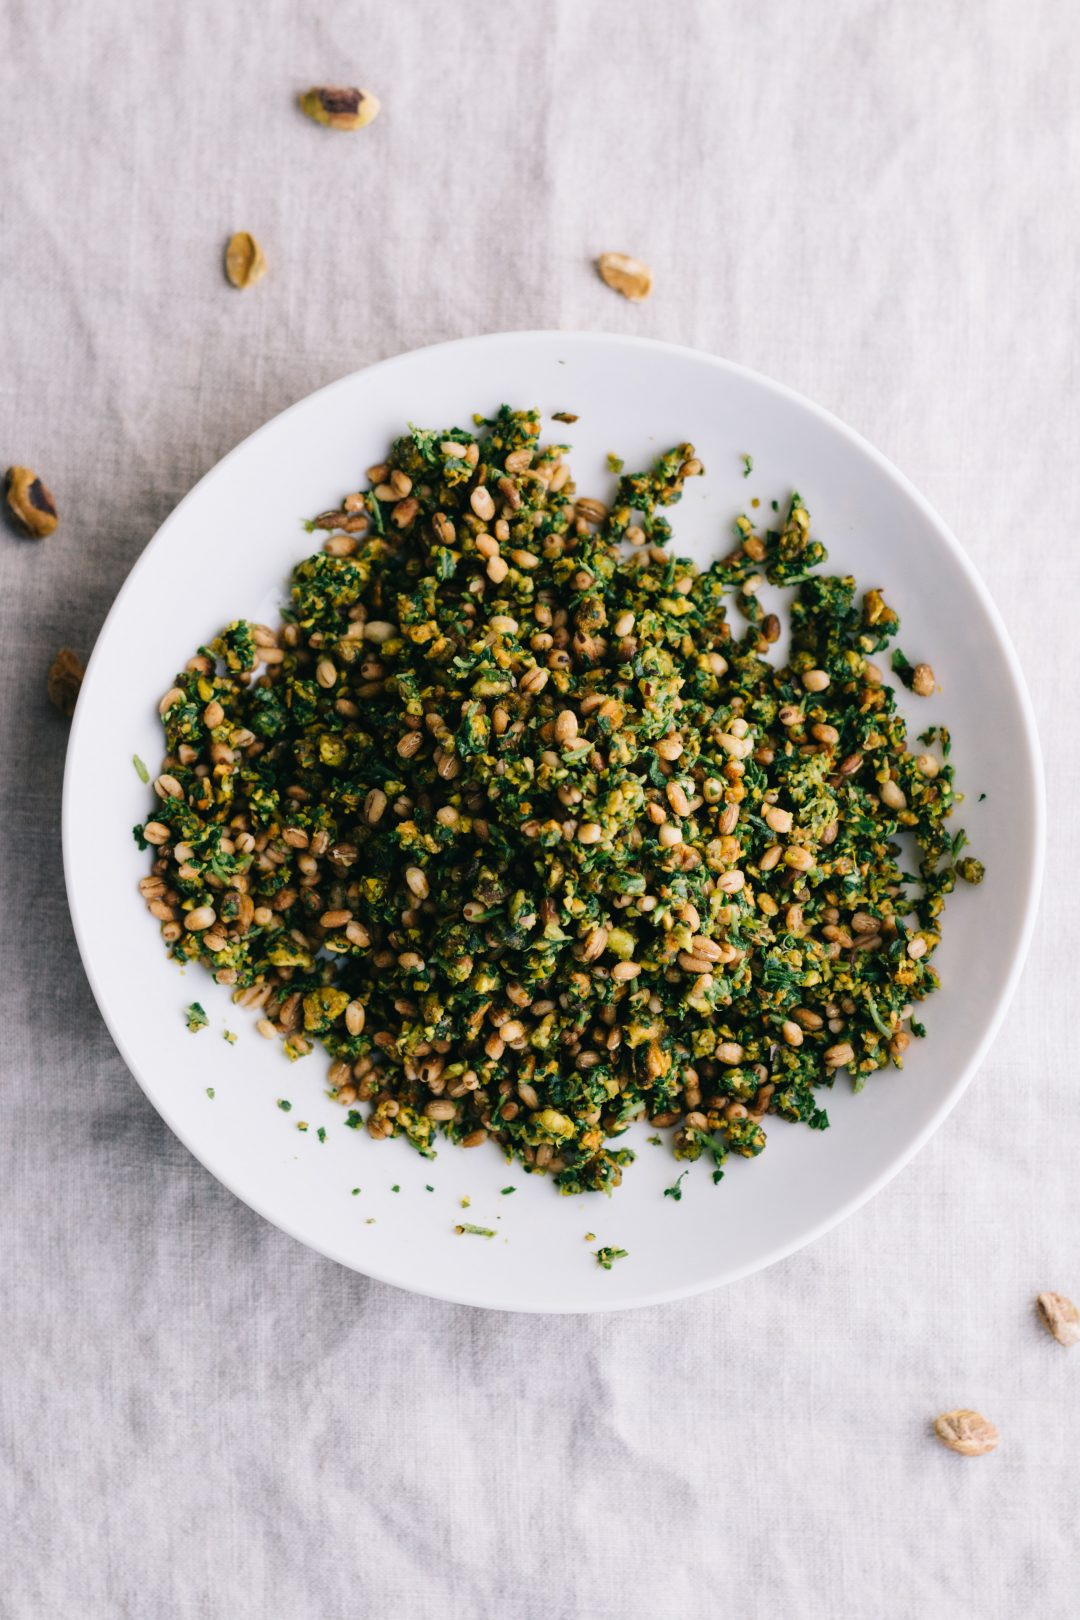 Overhead flatlay shot of pistachio gremolata with barley in a shallow bowl on a cloth covered surface.